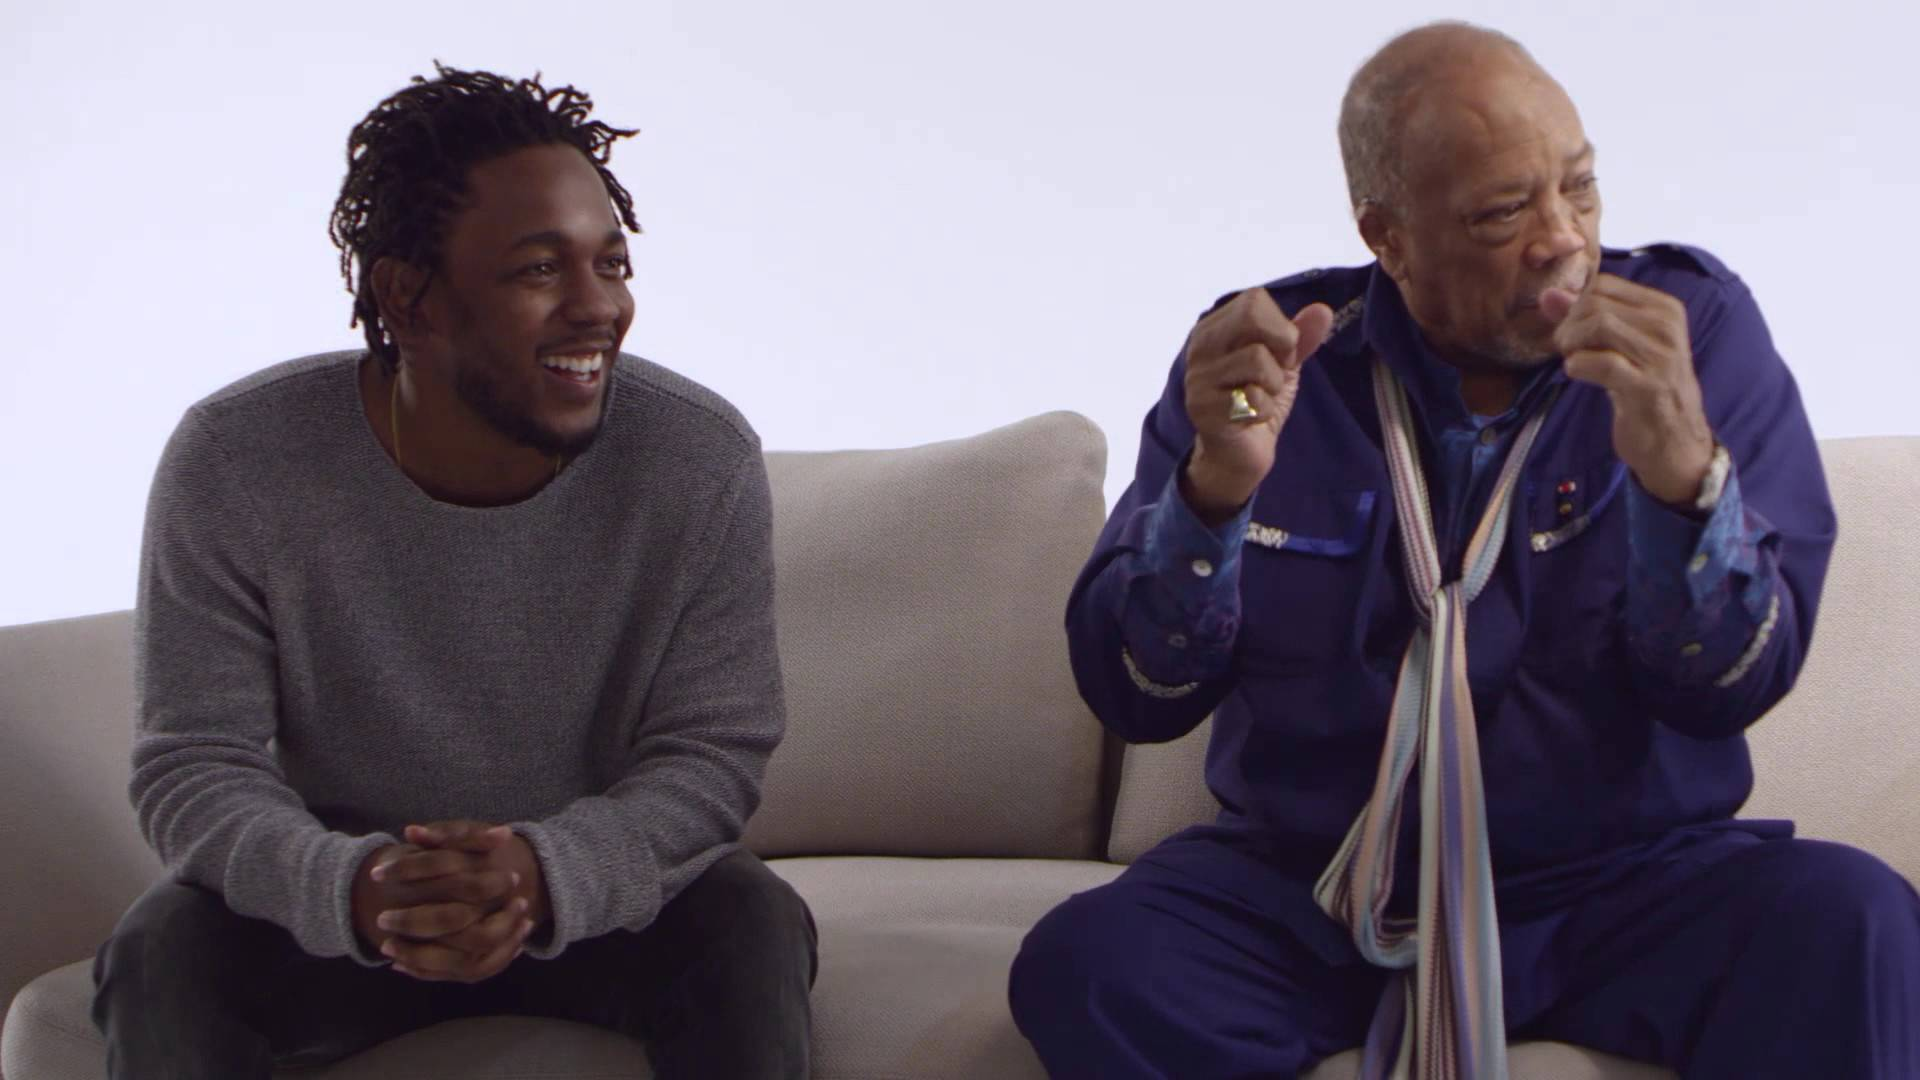 Kendrick Lamar and Quincy Jones Sit Down for an Interview